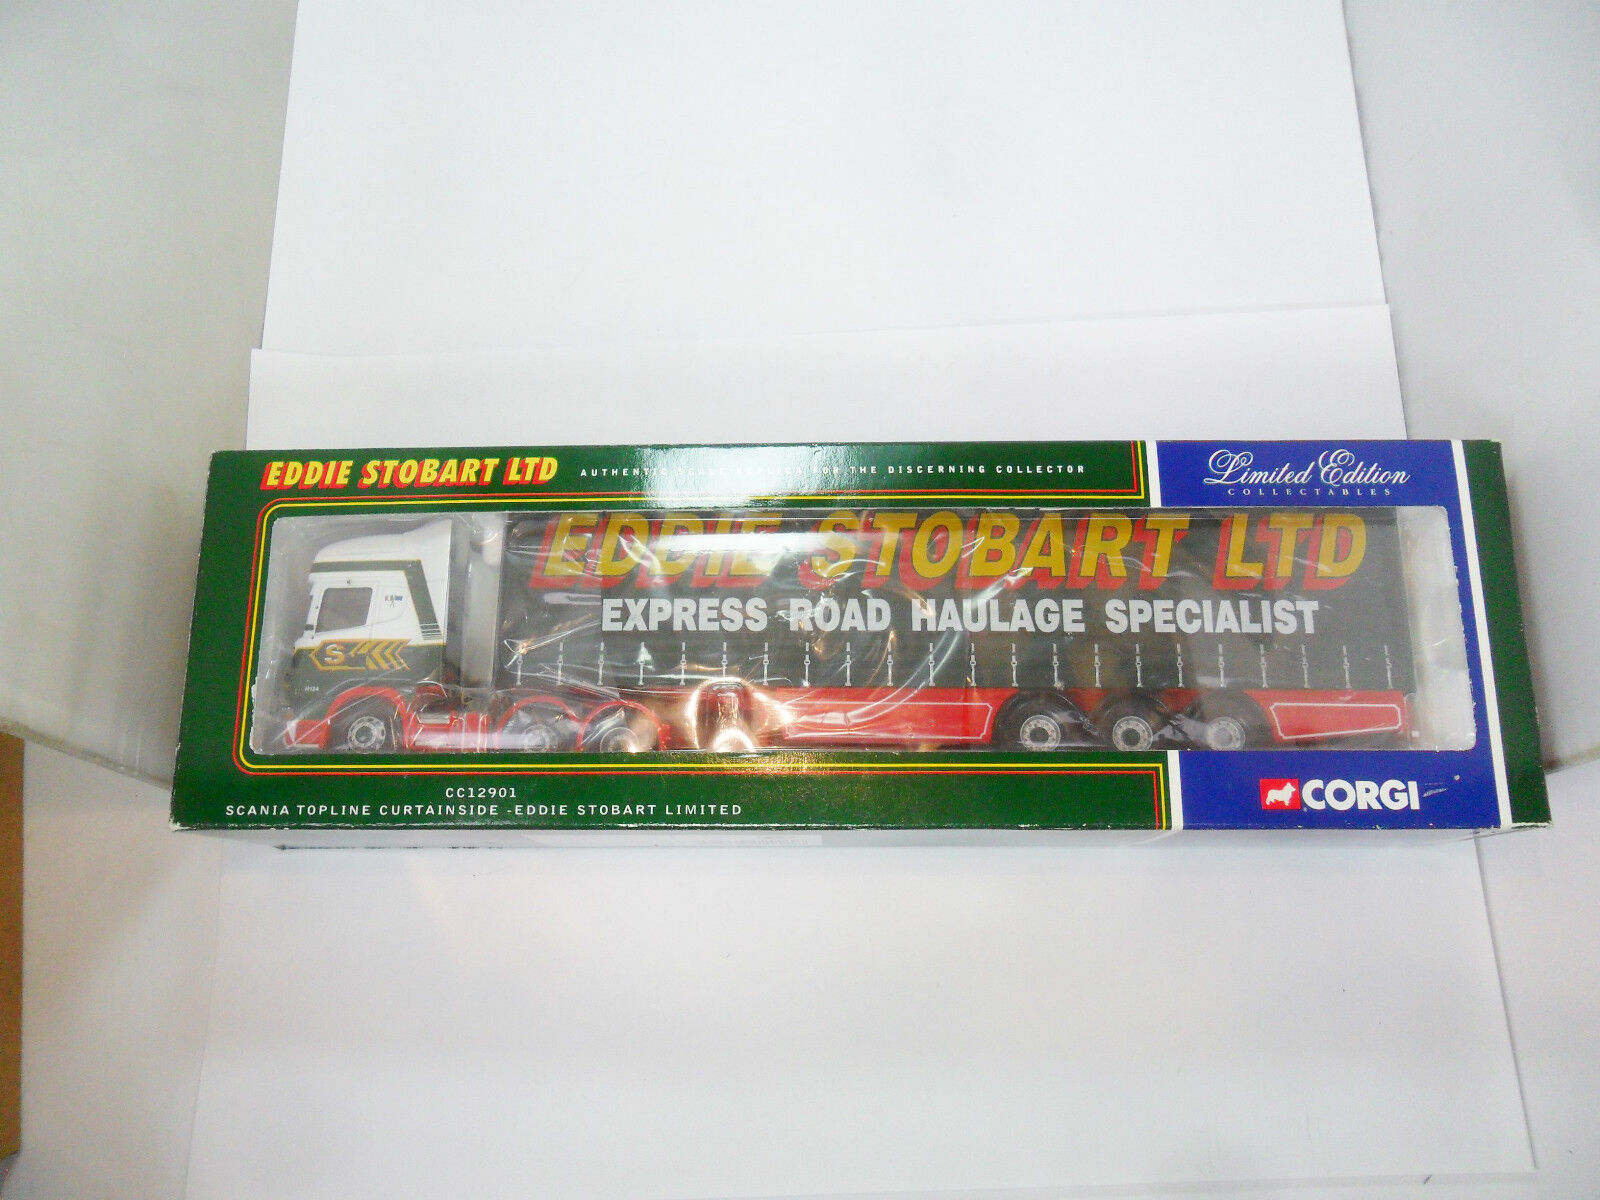 CORGI CC12901 SCANIA TOPLINE CURTAINSIDE  EDDIE STOBART LTD